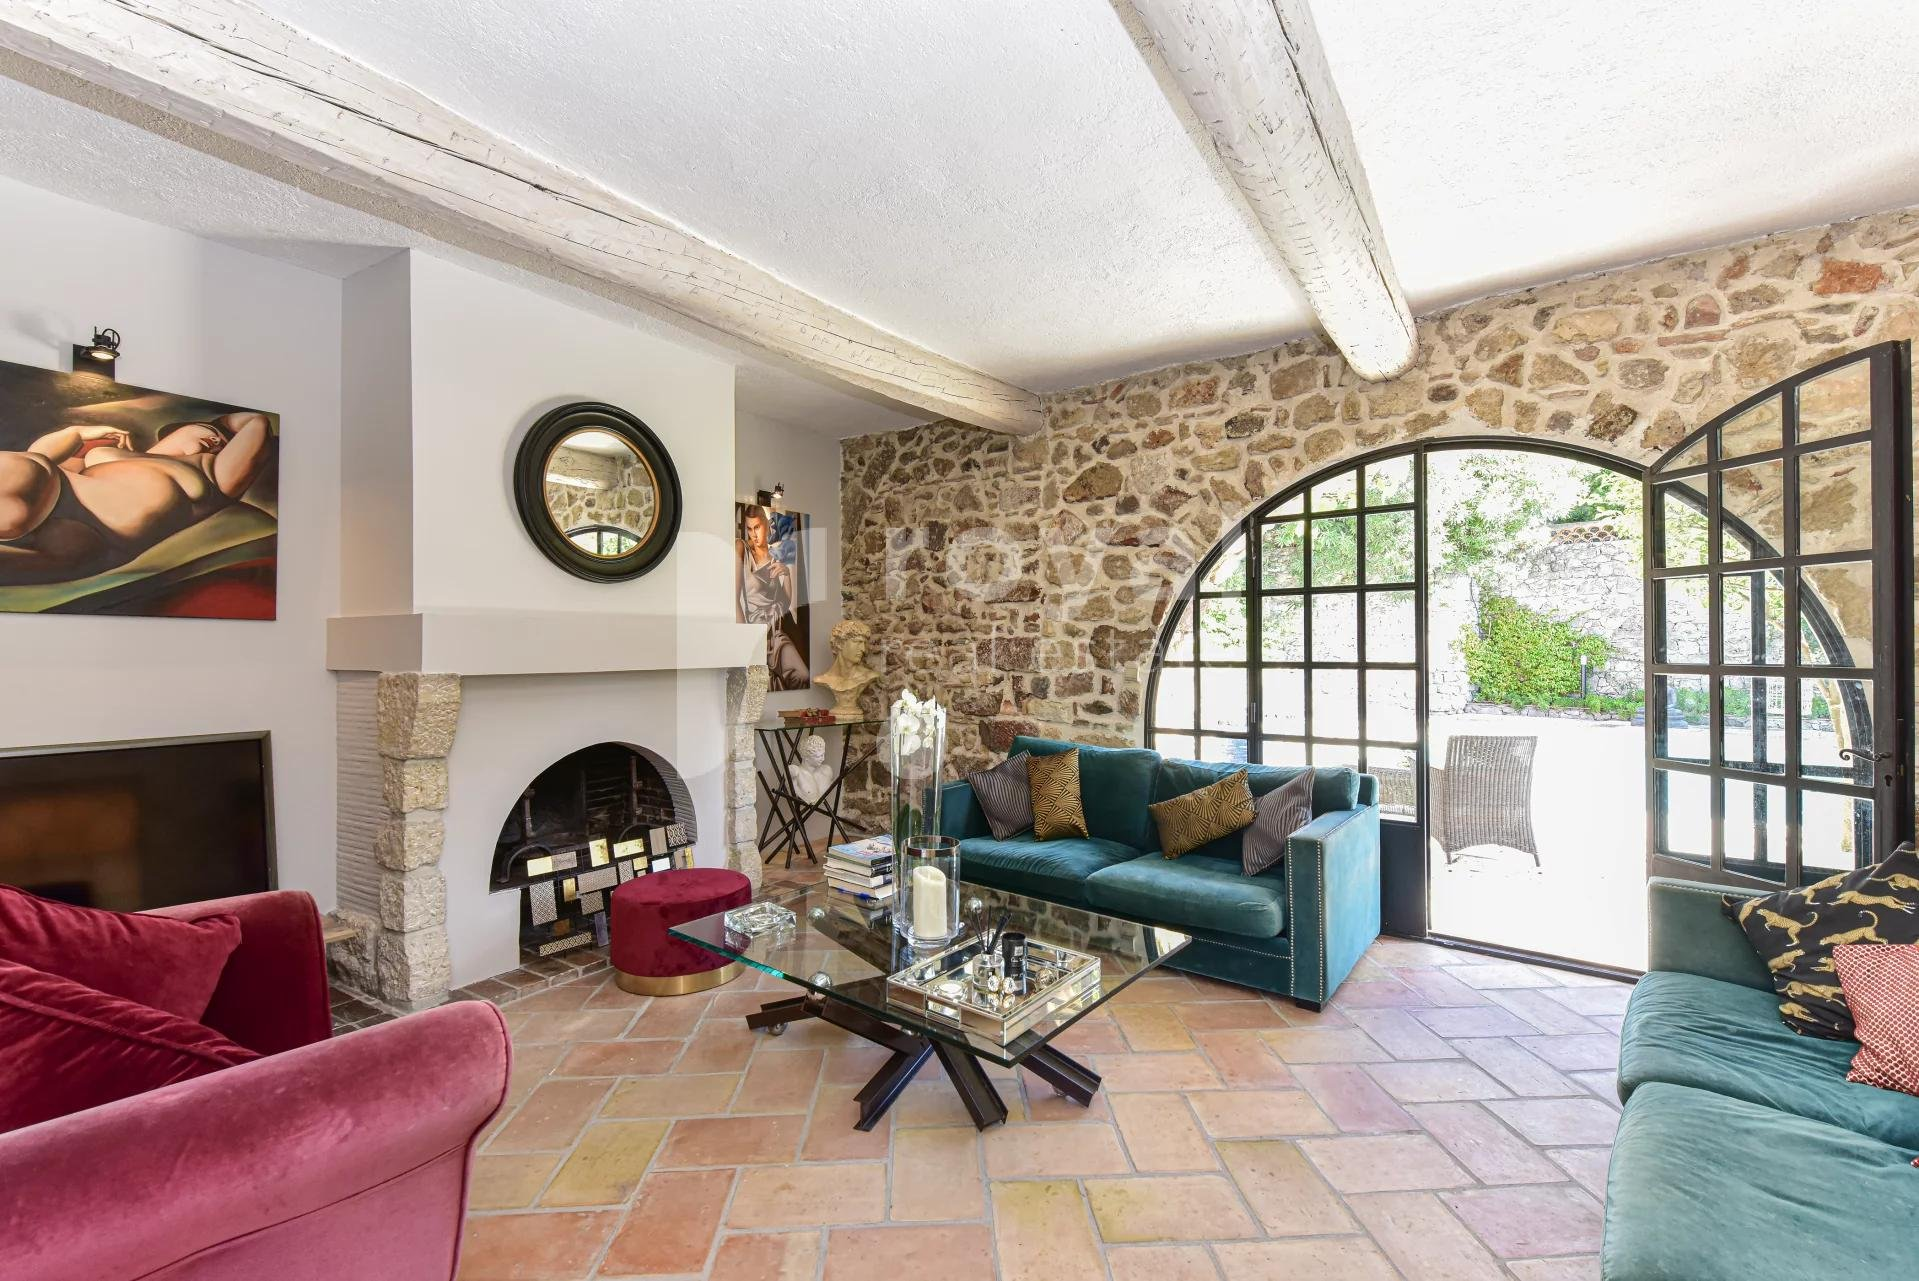 Old pottery for rent furnished in Biot